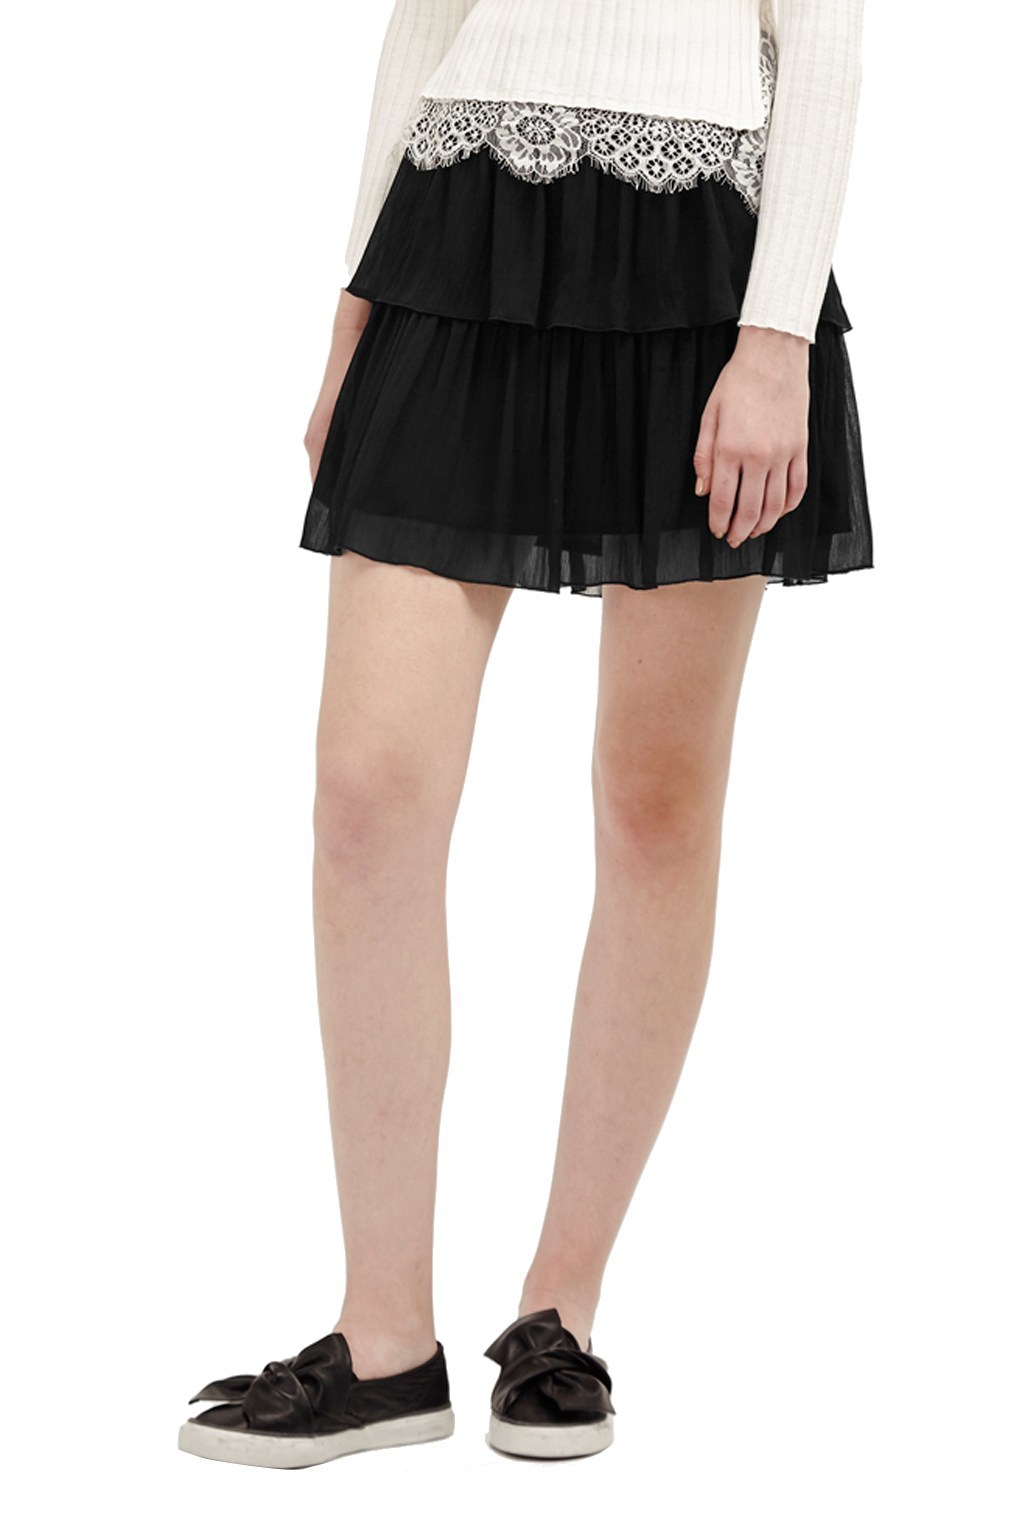 Lizzie Sheer Tiered Skirt Black - length: mini; pattern: plain; fit: loose/voluminous; style: tiered; waist: mid/regular rise; predominant colour: black; fibres: polyester/polyamide - 100%; hip detail: adds bulk at the hips; texture group: sheer fabrics/chiffon/organza etc.; pattern type: fabric; occasions: creative work; wardrobe: basic; season: a/w 2016